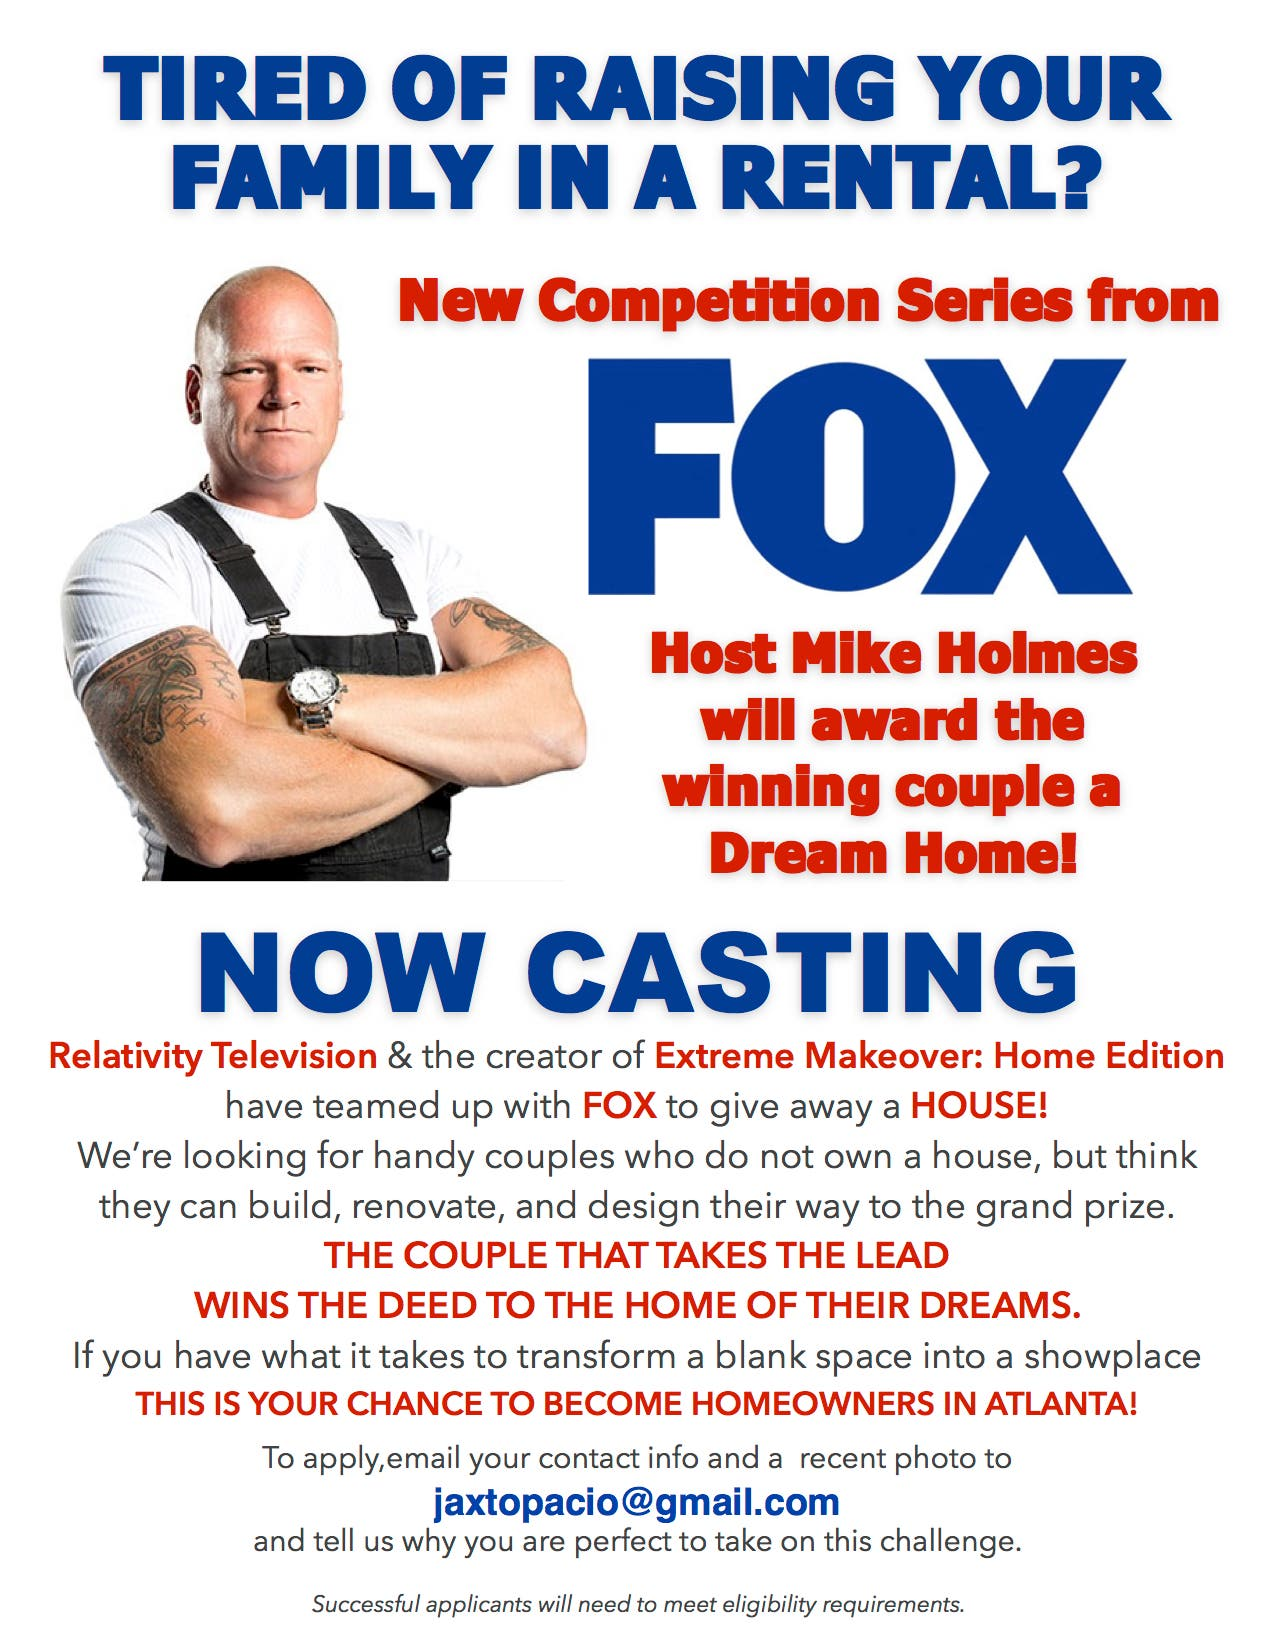 Win Dream Home Fox Show Home Free Casting Now Old Town Alexandria Va Patch